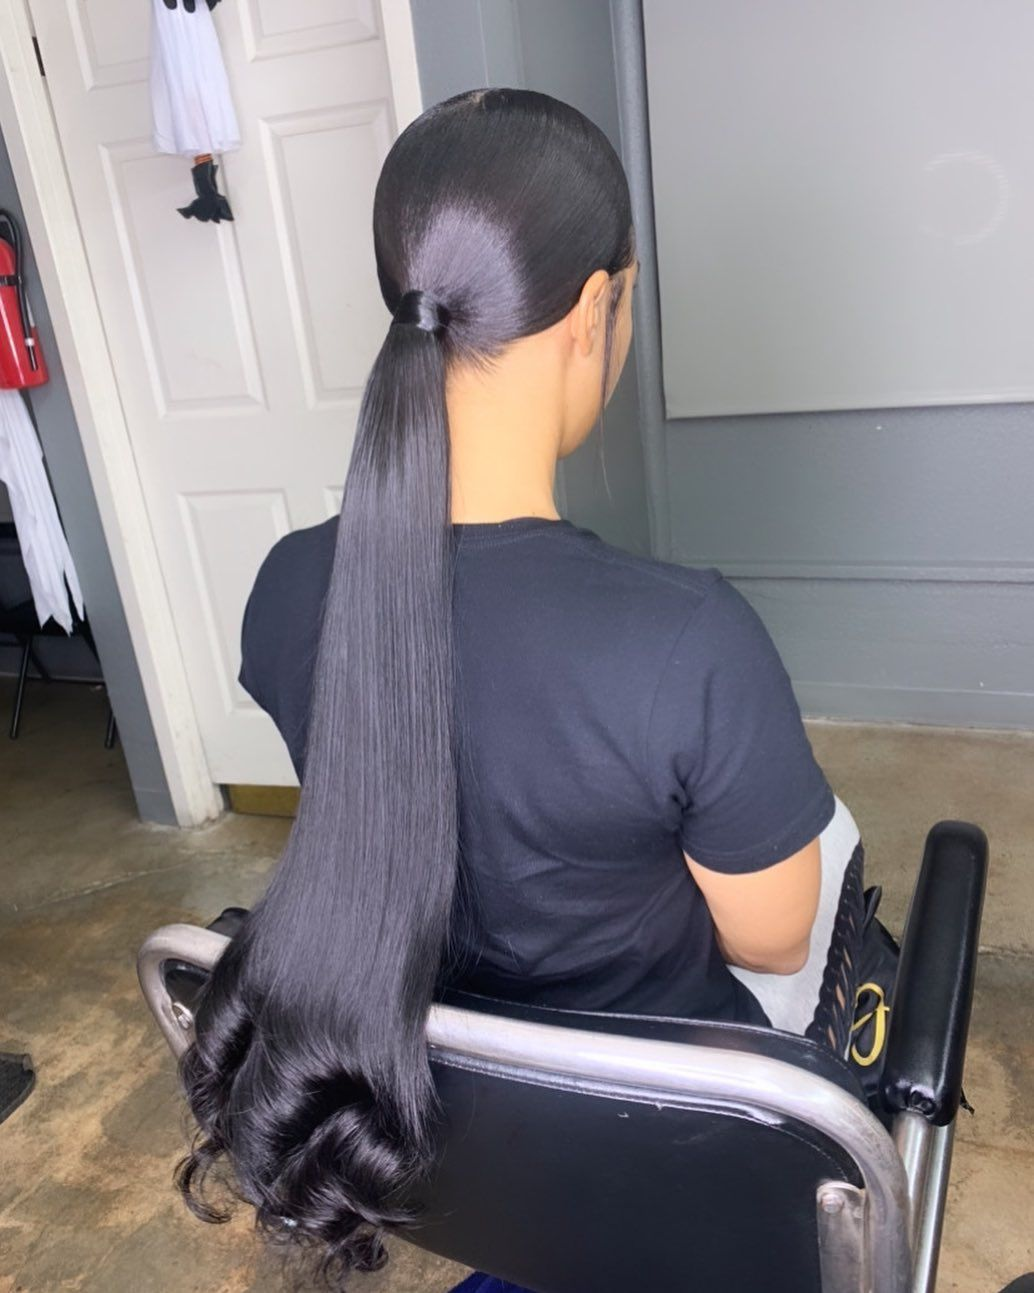 Ess On Instagram Middle Part Sleek Ponytail Mid High Ponytail W Chain Links Hairbyess La Sleek Ponytail Hair Ponytail Styles Sleek Ponytail Hairstyles